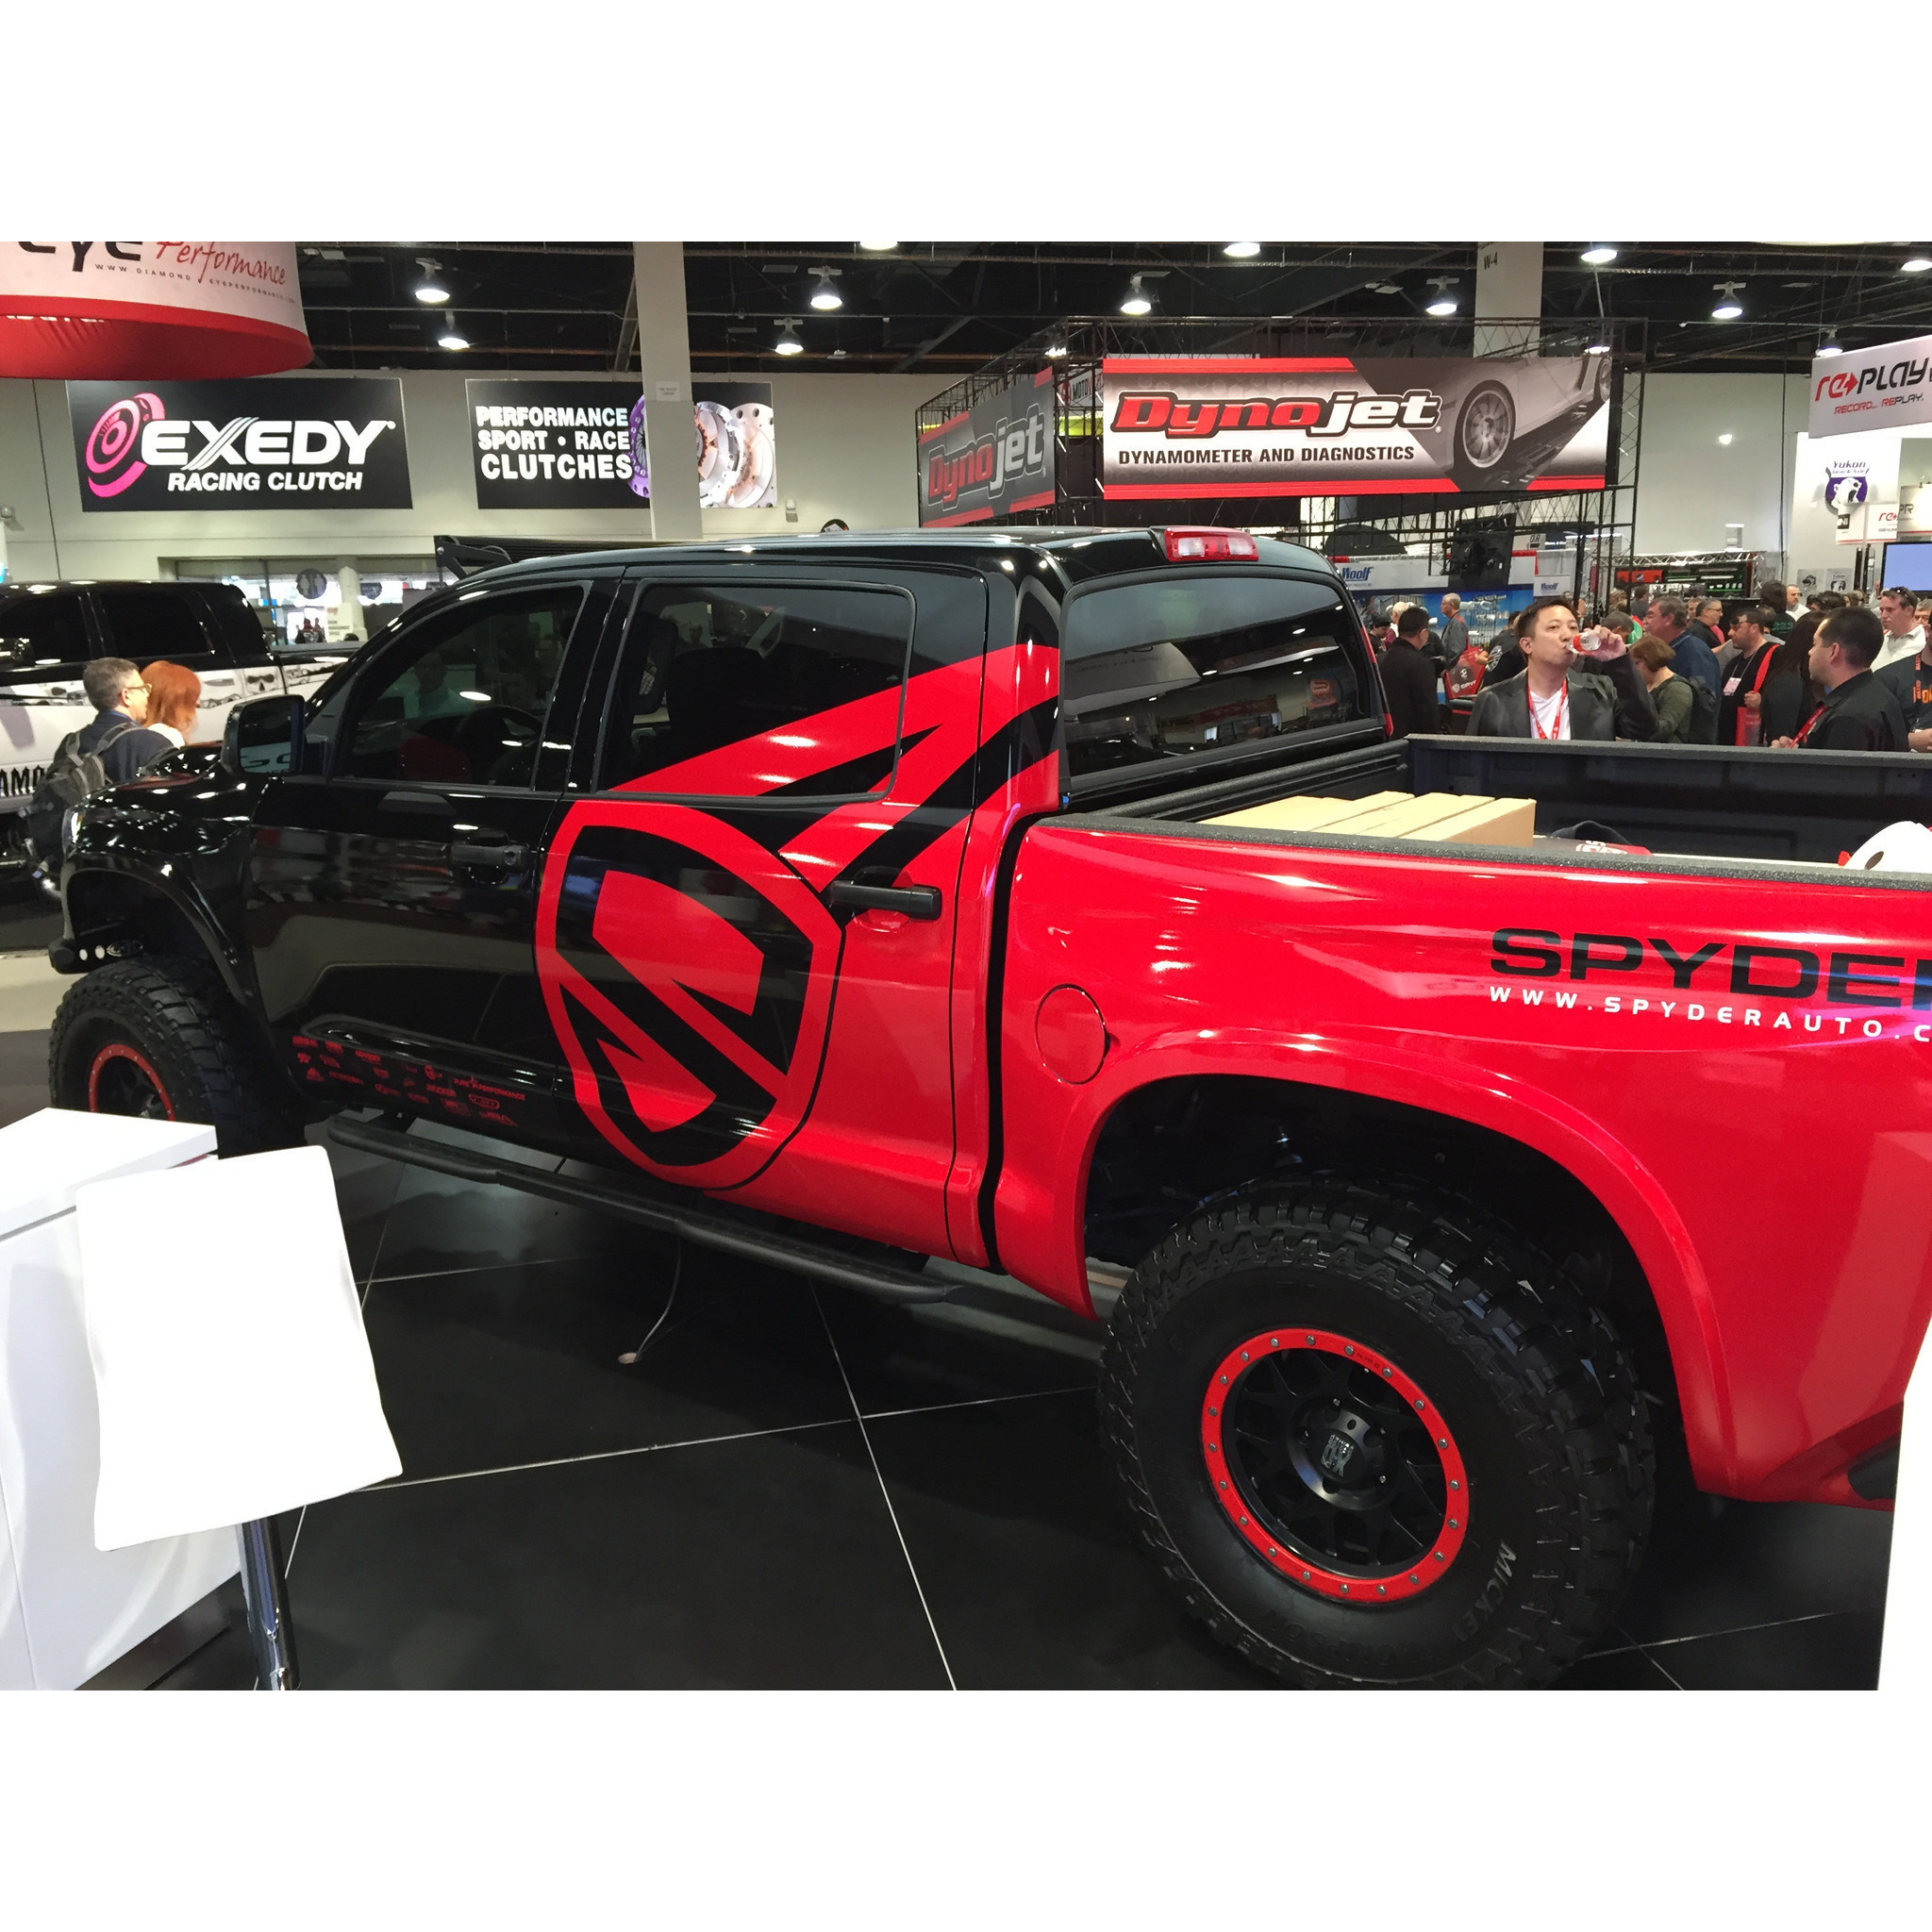 2019 Toyota Tundra Rumors Review: 2014-2019 Toyota Tundra Bedsides [AFC 143]